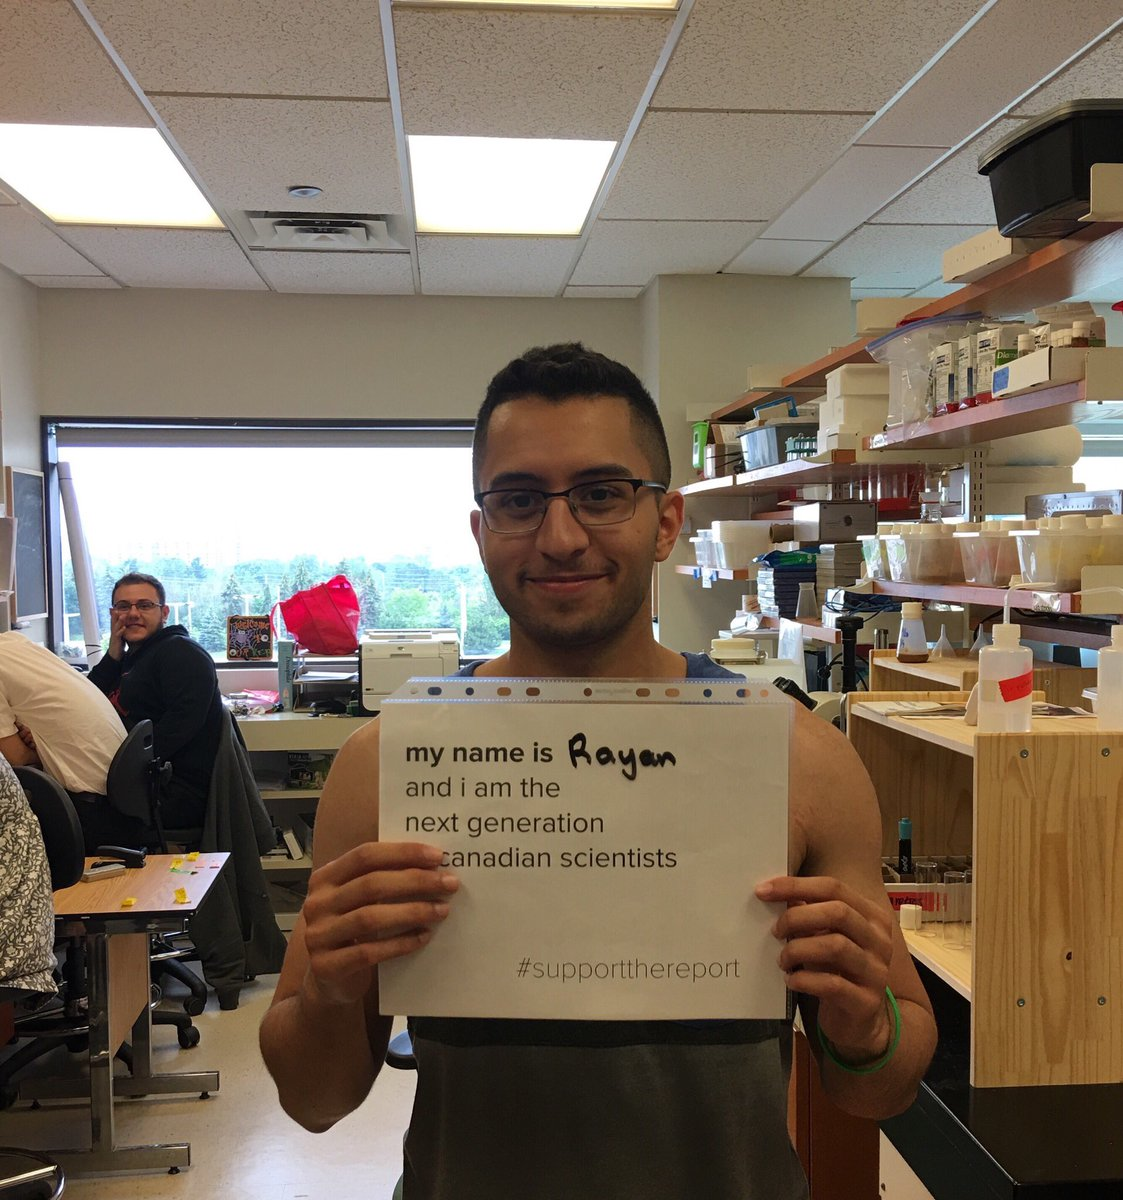 My summer student Rayan wants you to support the Naylor report! #NextGenCanScience. #supportthereport @JustinTrudeau @Bill_Morneau<br>http://pic.twitter.com/bH7SingAKQ